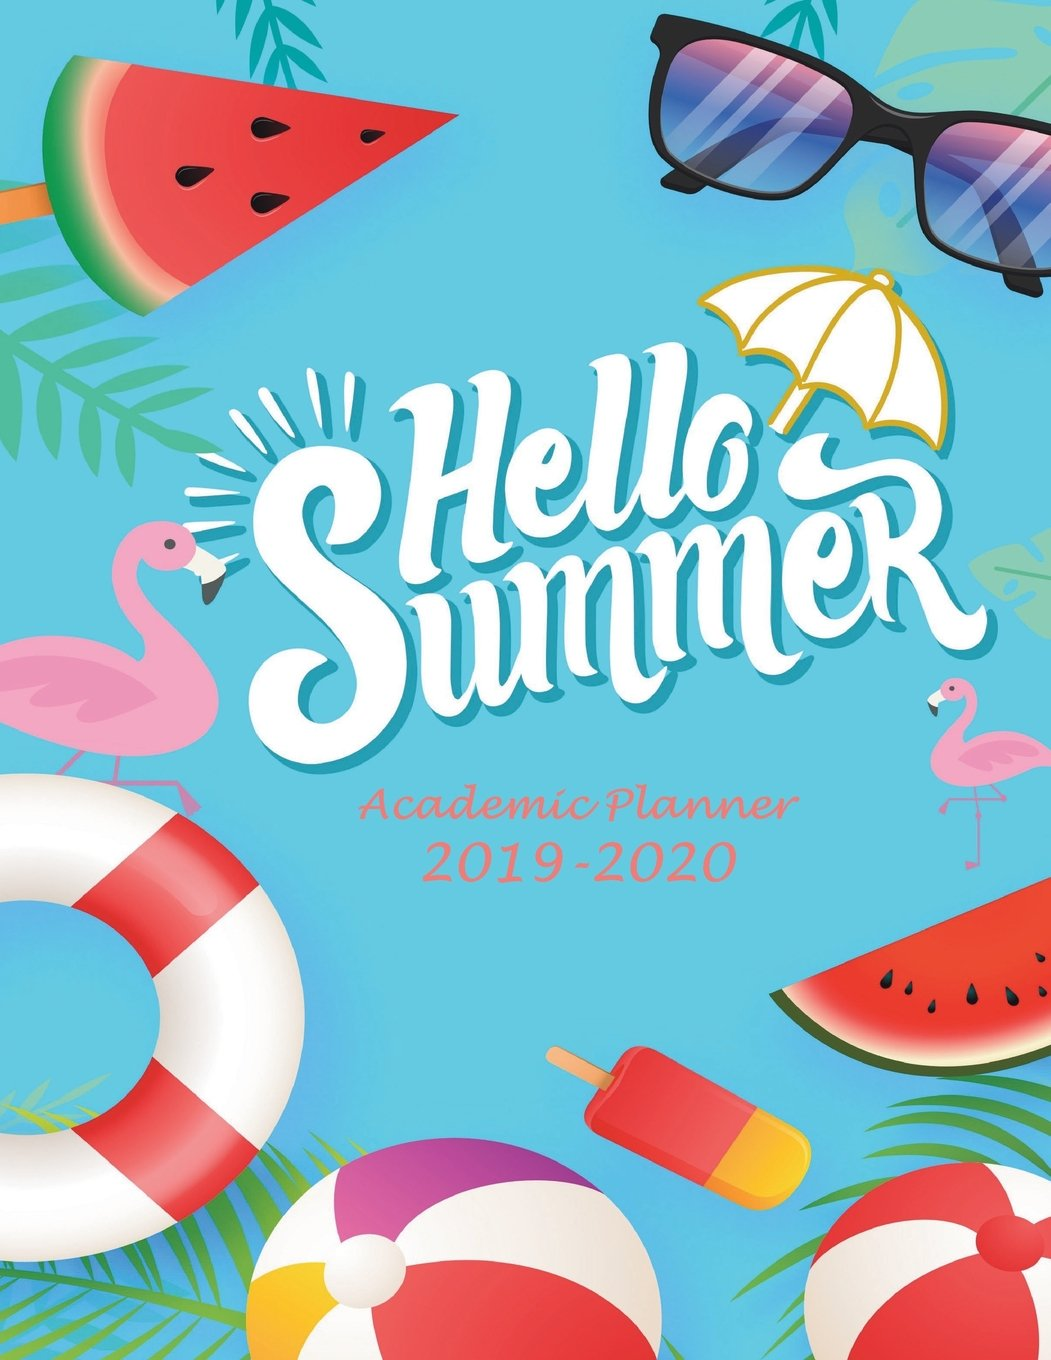 """Hello Summer: Academic Planner 2019-2020: Blue Color, Two year Academic 2019-2020 Calendar Book, Weekly/Monthly/Yearly Calendar Journal, Large 8.5"""" x ... Calendar Schedule Organizer Journal Notebook pdf"""